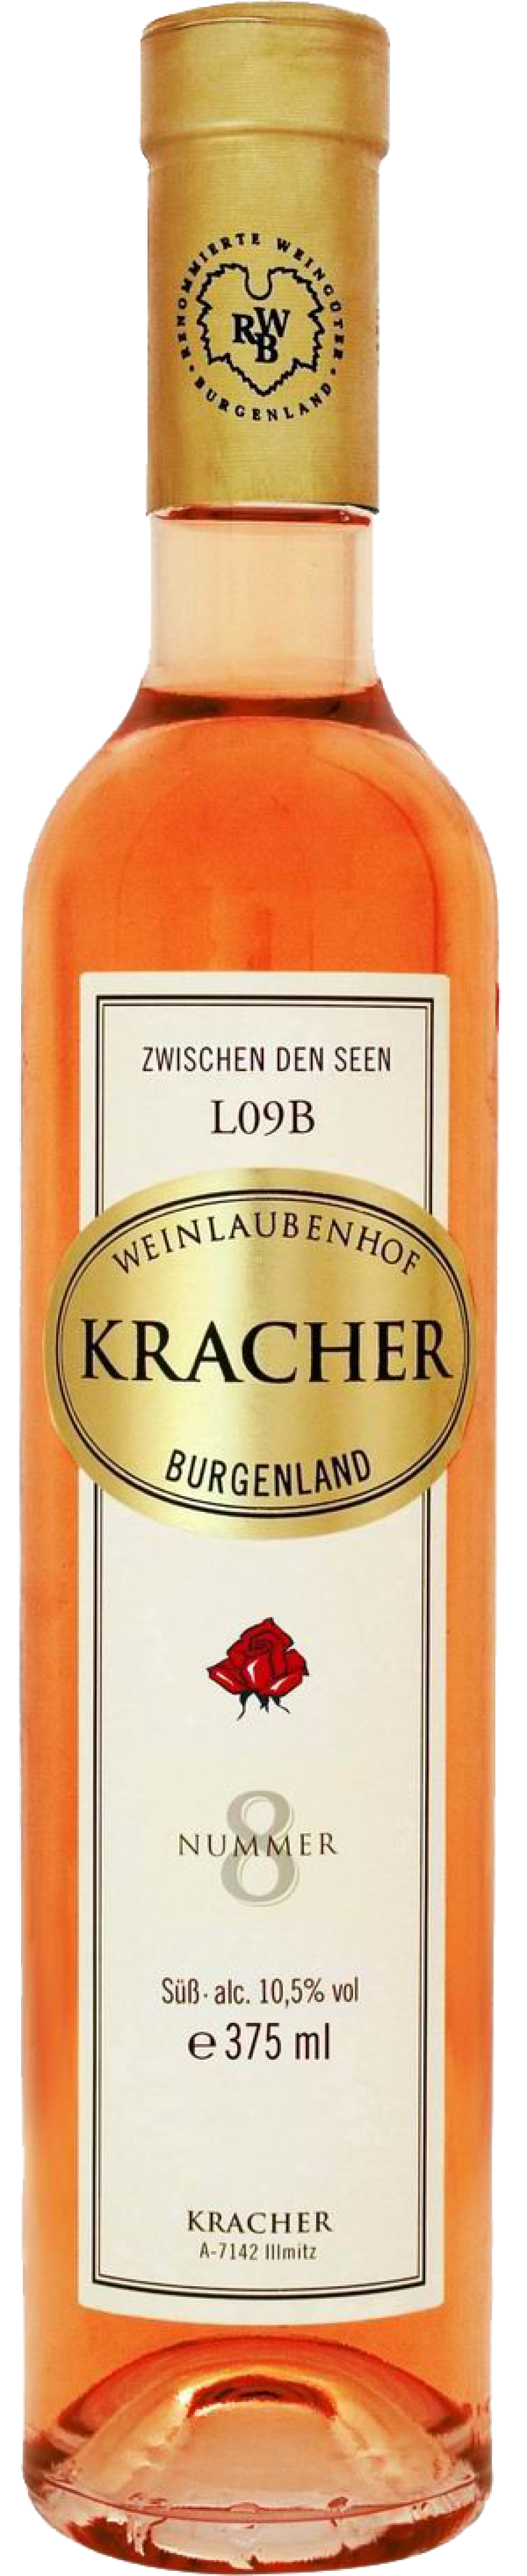 files/images/wines/Austria/kracher-neusiedlersee-burgenland/ONKCR09_pic_big.png